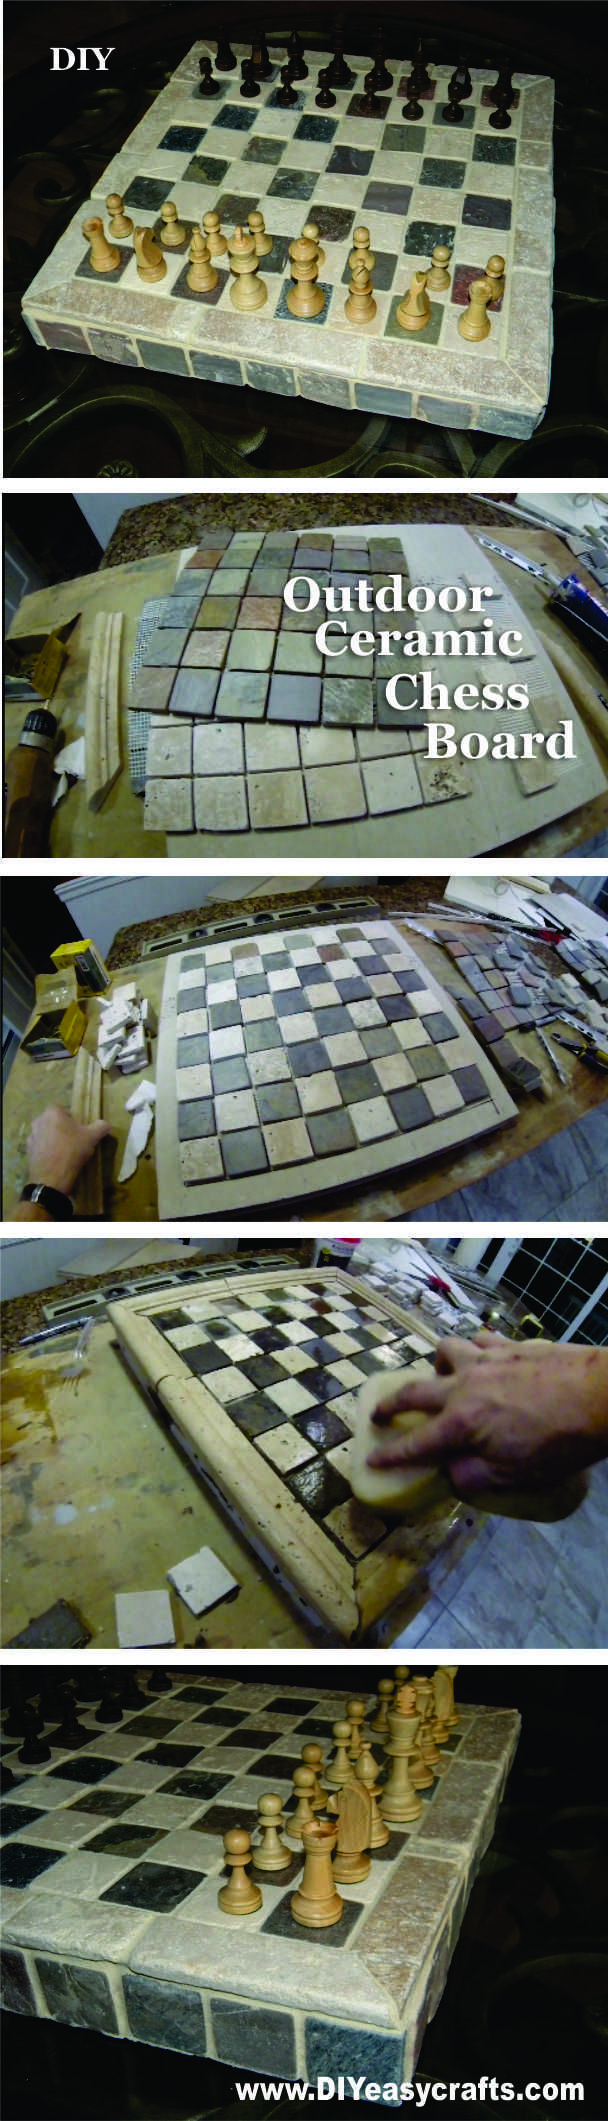 DIY Ceramic Tile Outdoor Chess Board. www.DIYeasycrafts.com | DIY ...